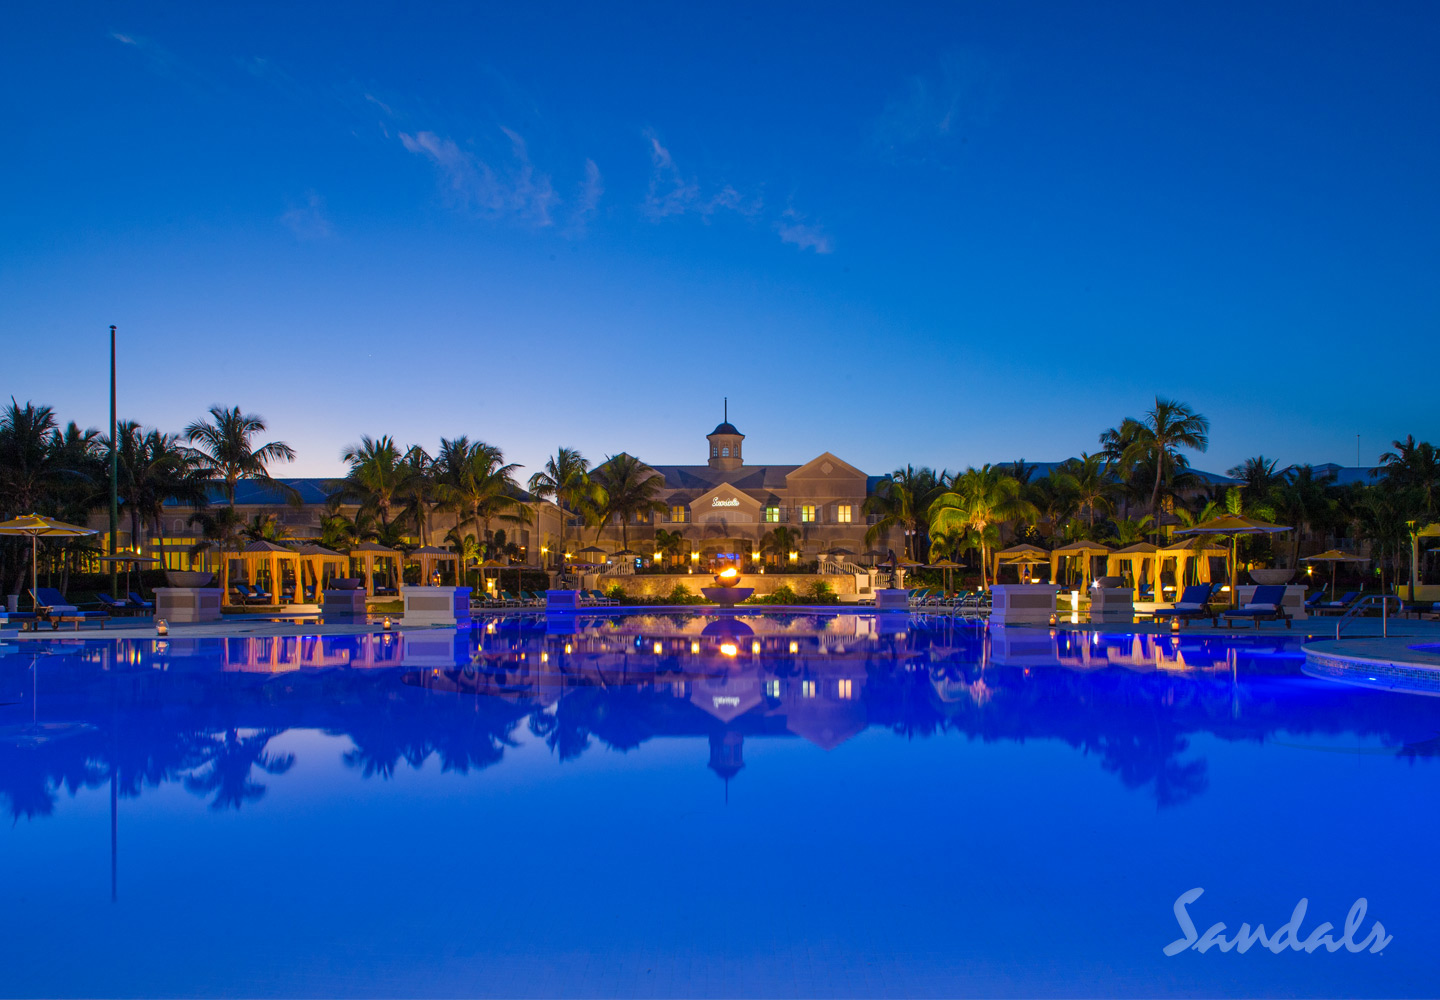 Travel Agency All-Inclusive Resort Sandals Emerald Bay 094